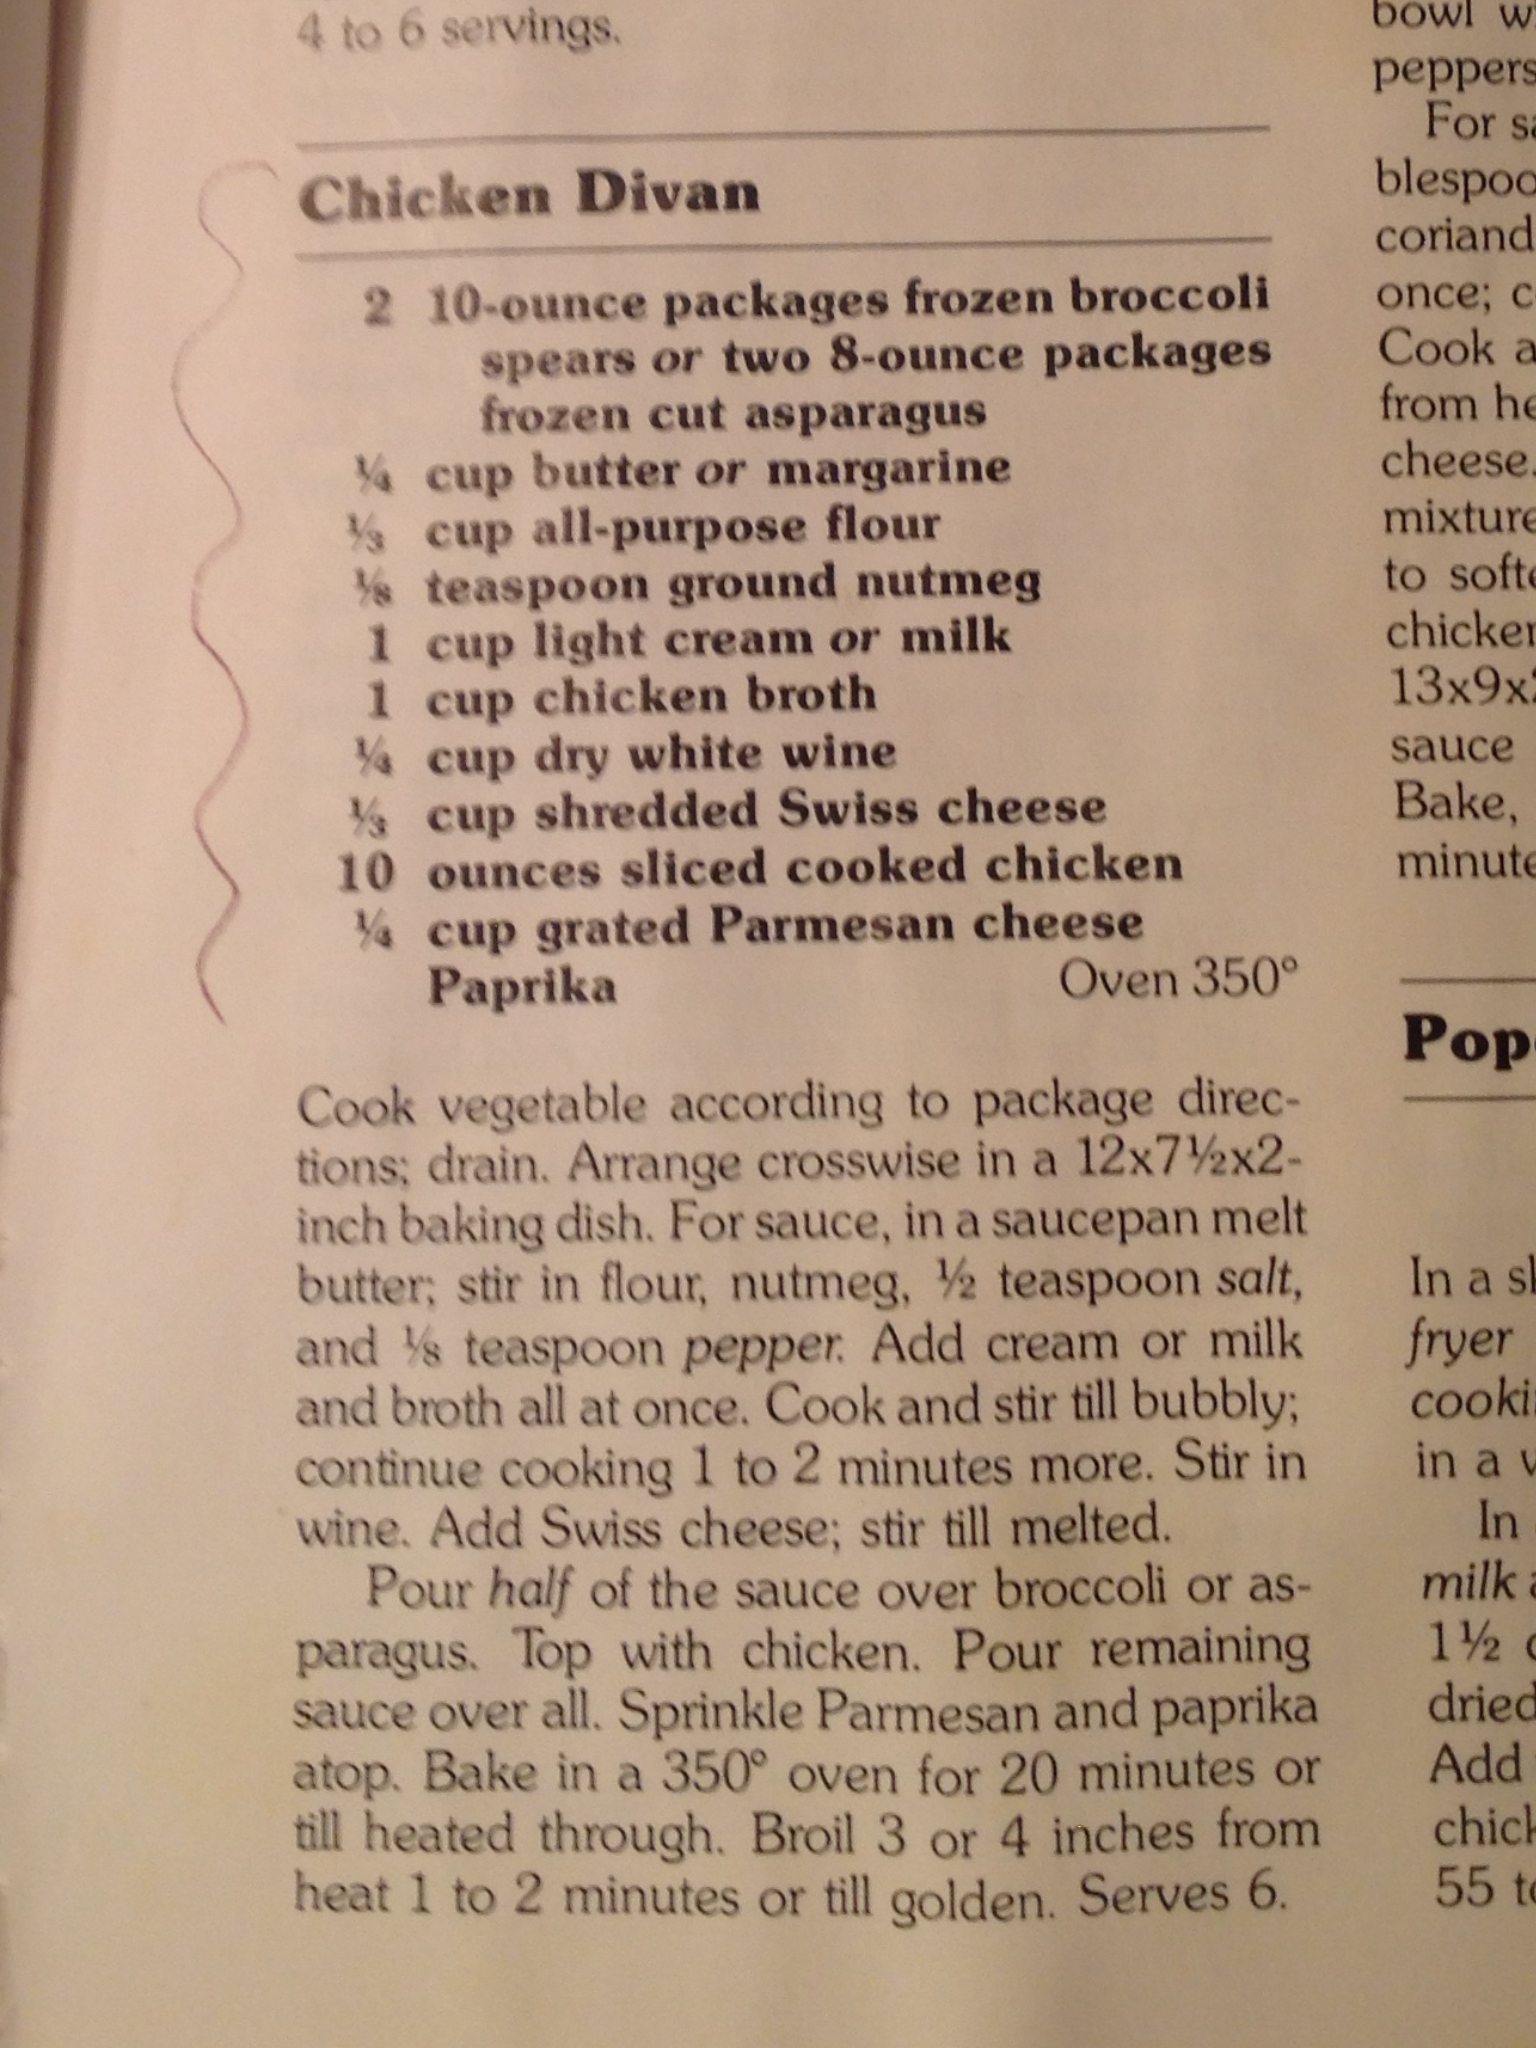 edb7015e0346a3b366701c4f84863b6d - Meatloaf Recipe From Better Homes And Gardens Cookbook